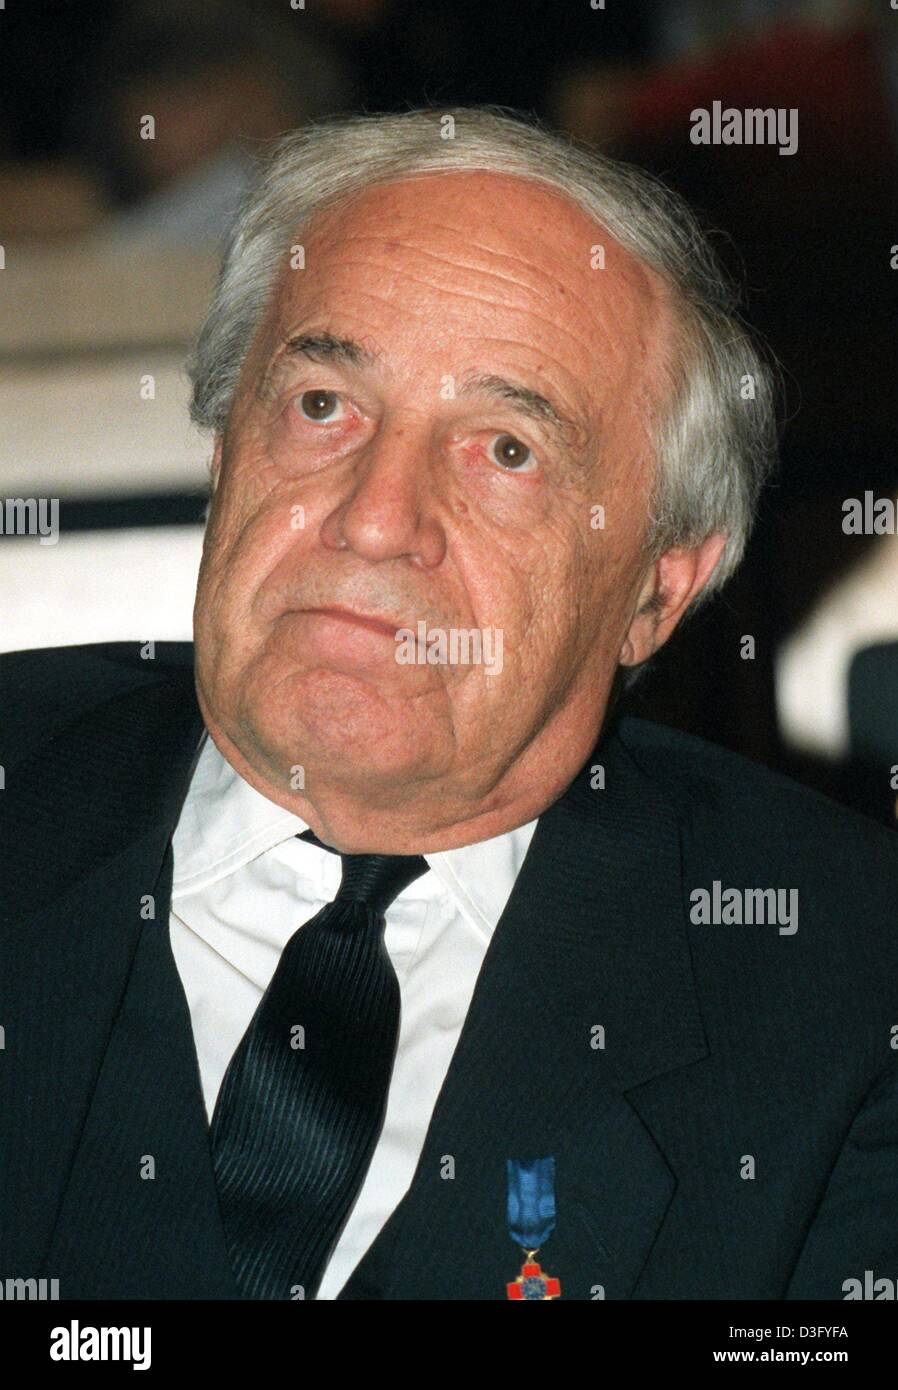 (dpa files) - French composer and conductor Pierre Boulez pictured in Freiburg, Germany, 14 November 1998. He studied - Stock Image